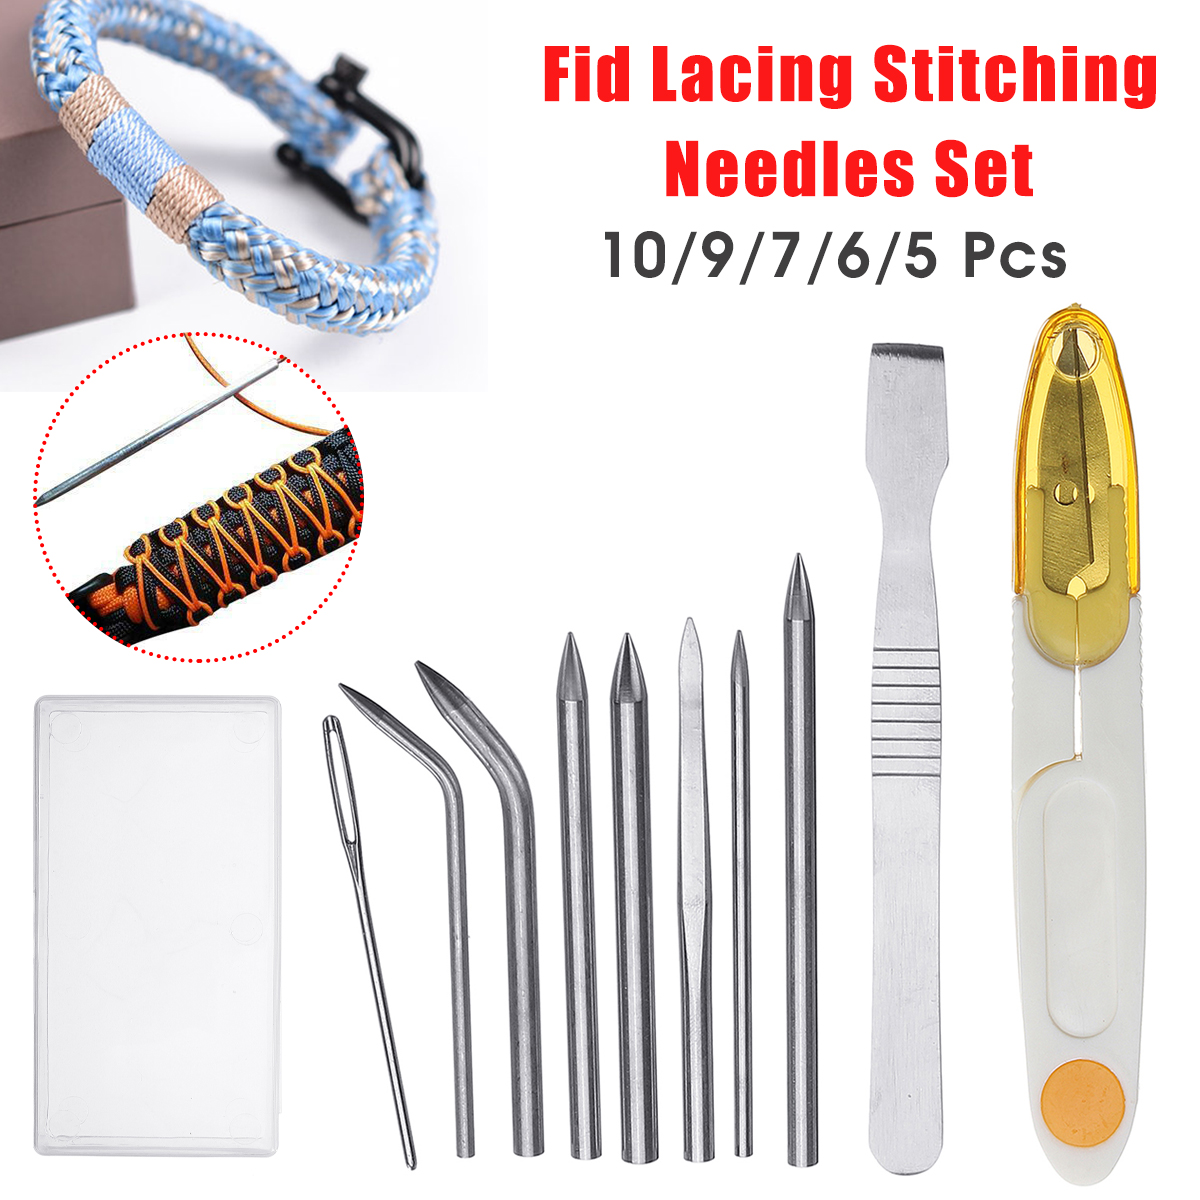 Paracord Bracelet Stainless Steel FID Lacing Stitching Re Creative Set Need F5X3